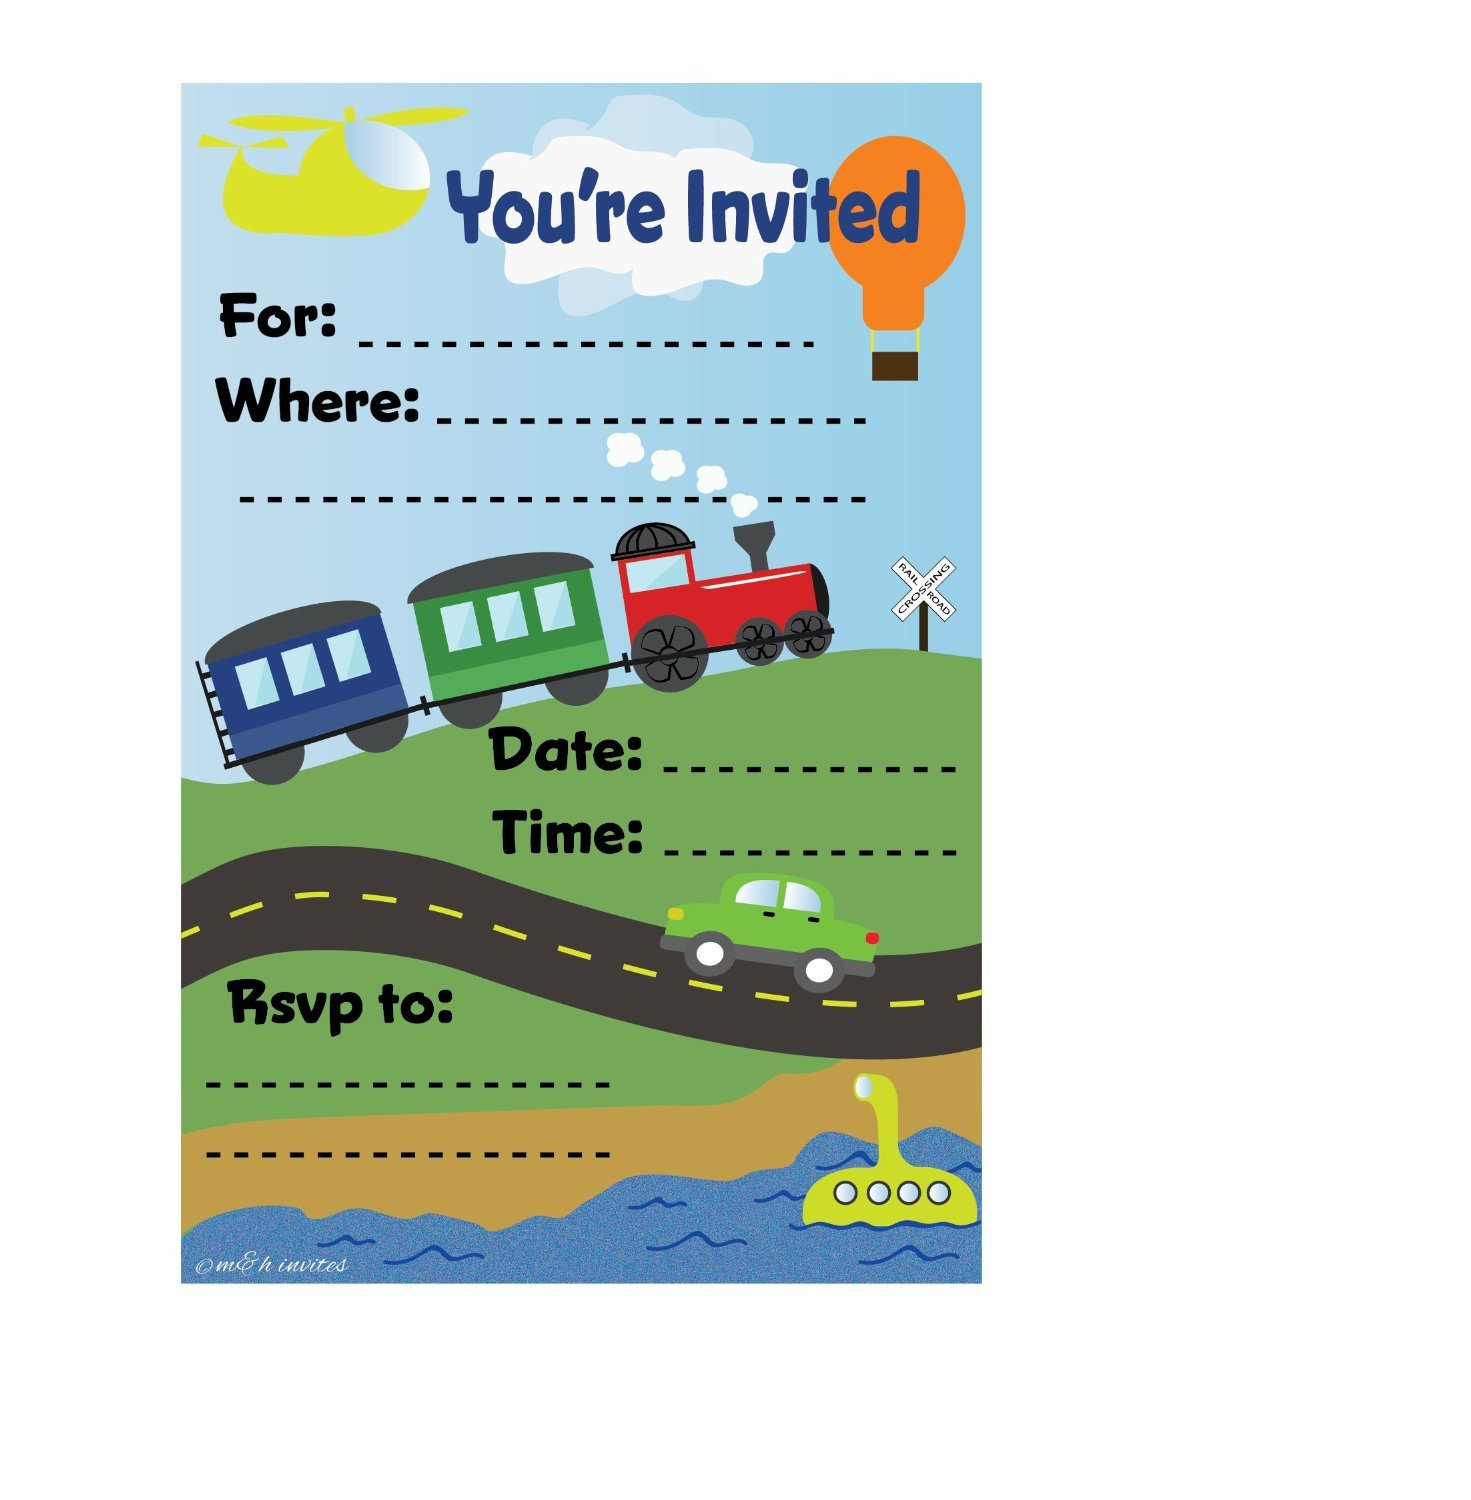 Amazon transportation train themed birthday party invitations amazon transportation train themed birthday party invitations fill in style 20 count with envelopes by mh invites toys games stopboris Image collections